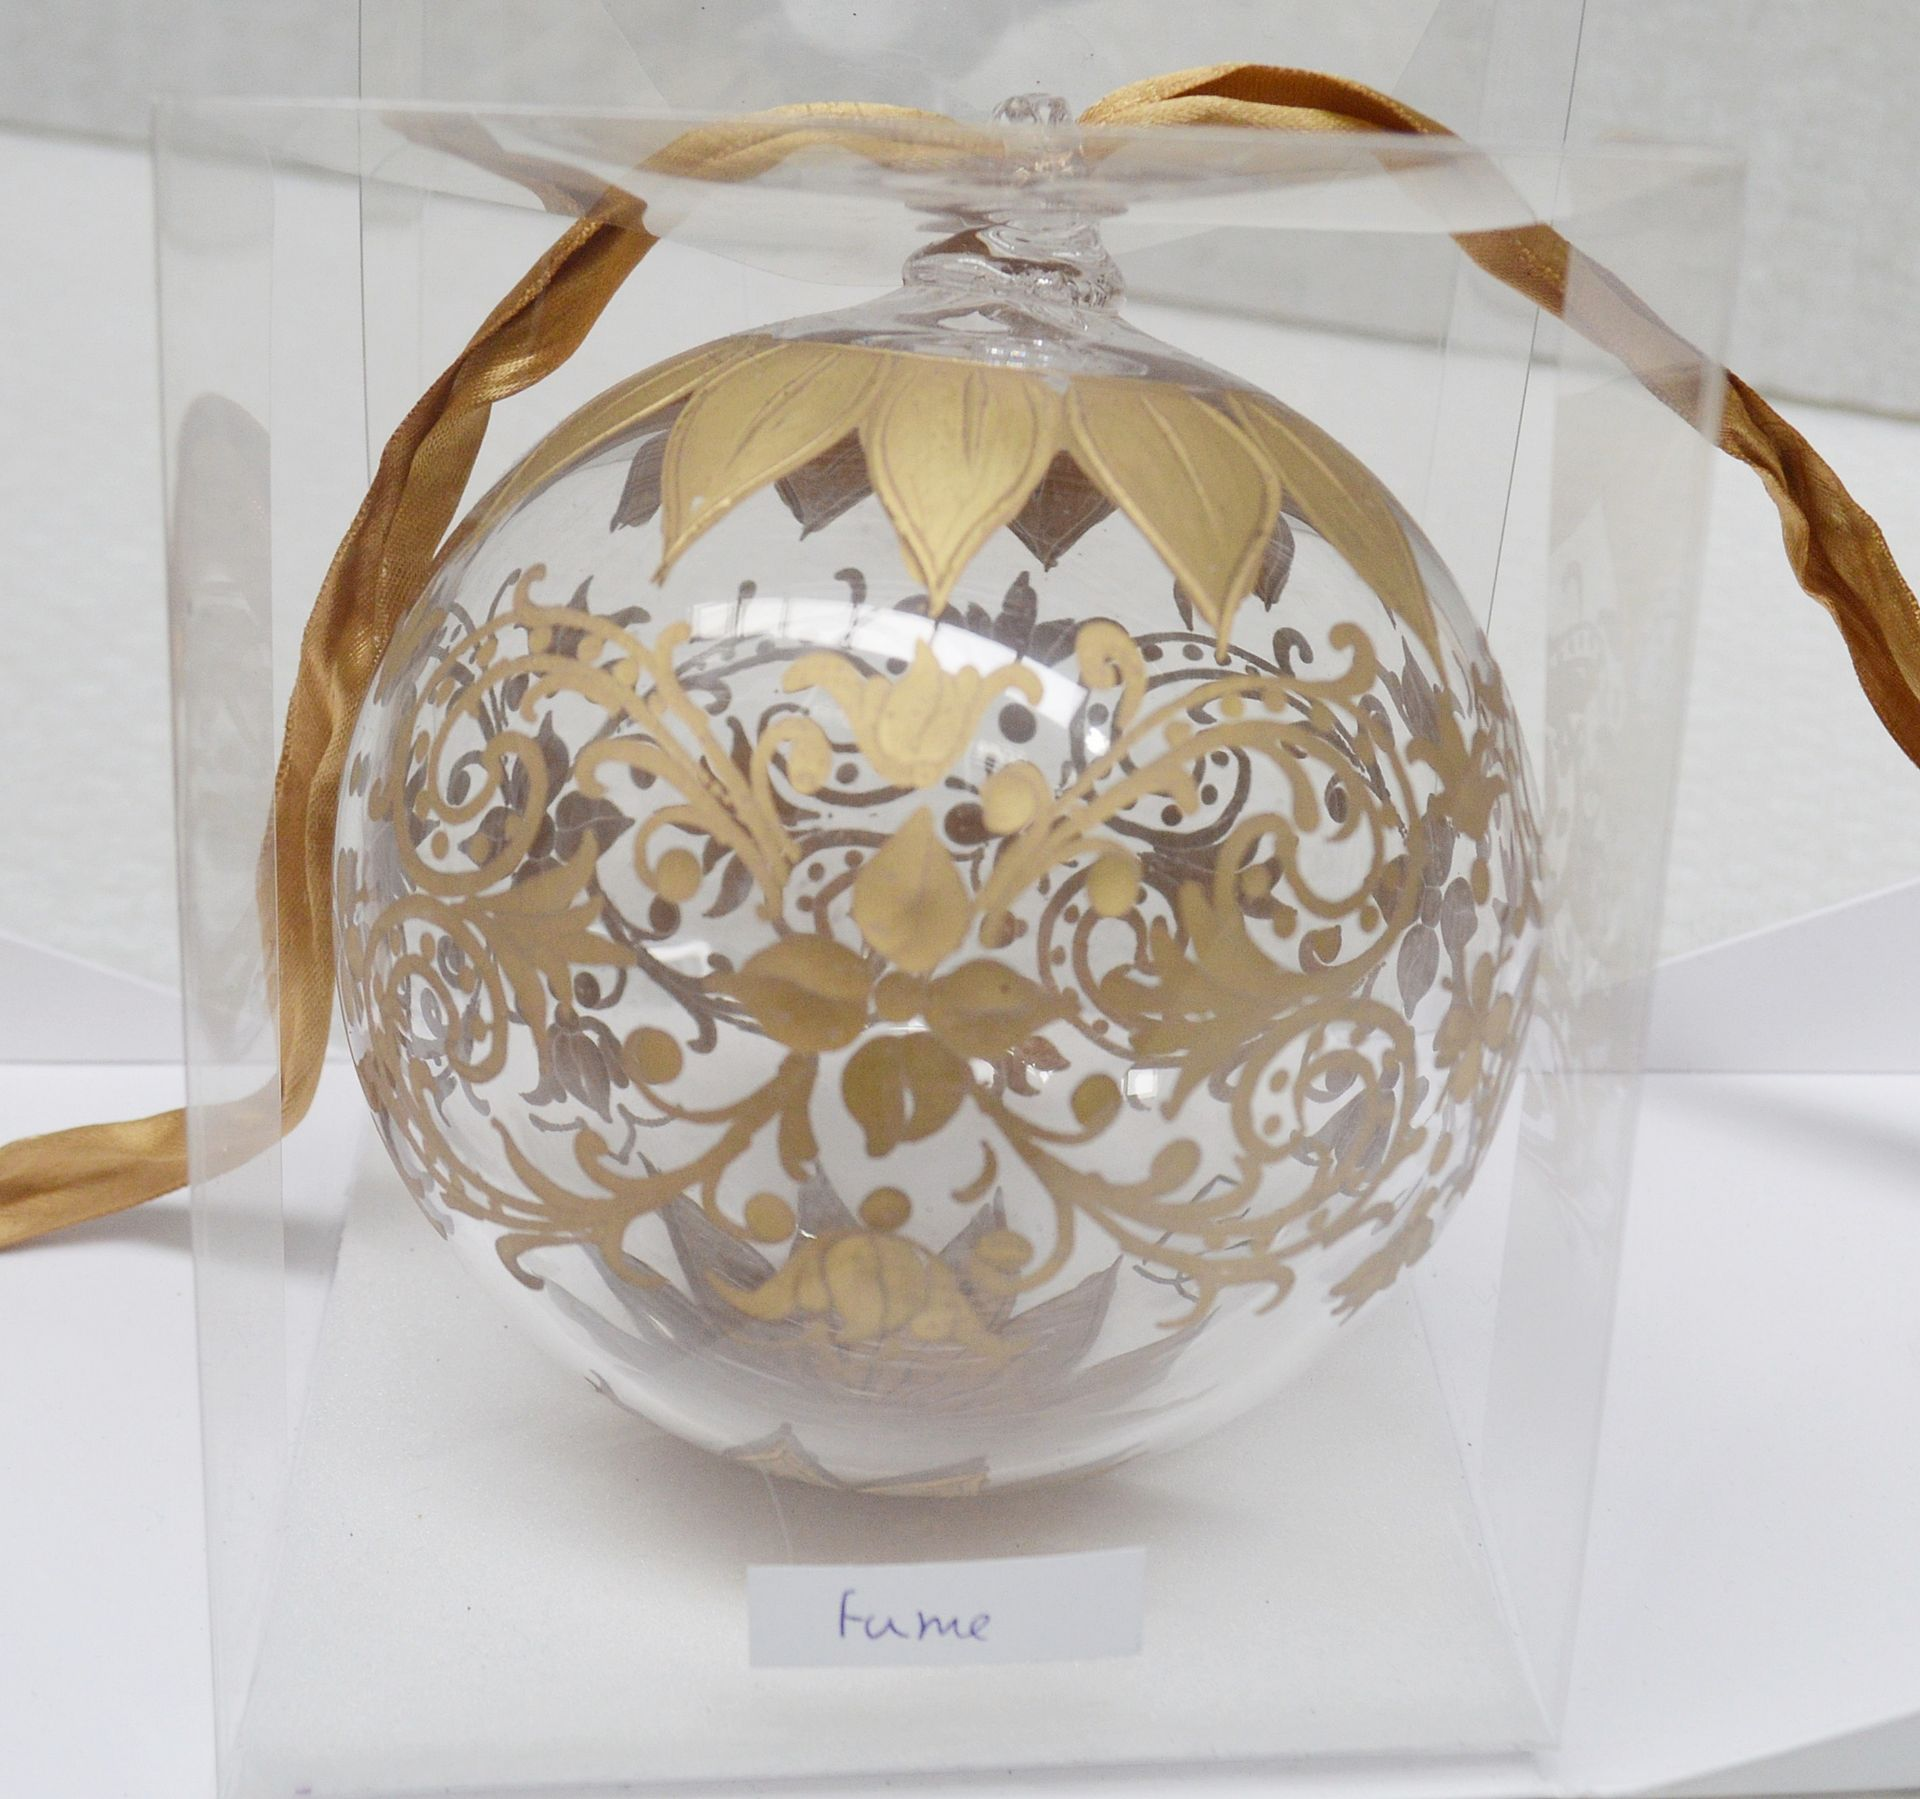 1 x BALDI 'Home Jewels' Italian Hand-crafted Artisan Christmas Tree Decoration In Gold - Dimensions: - Image 4 of 4